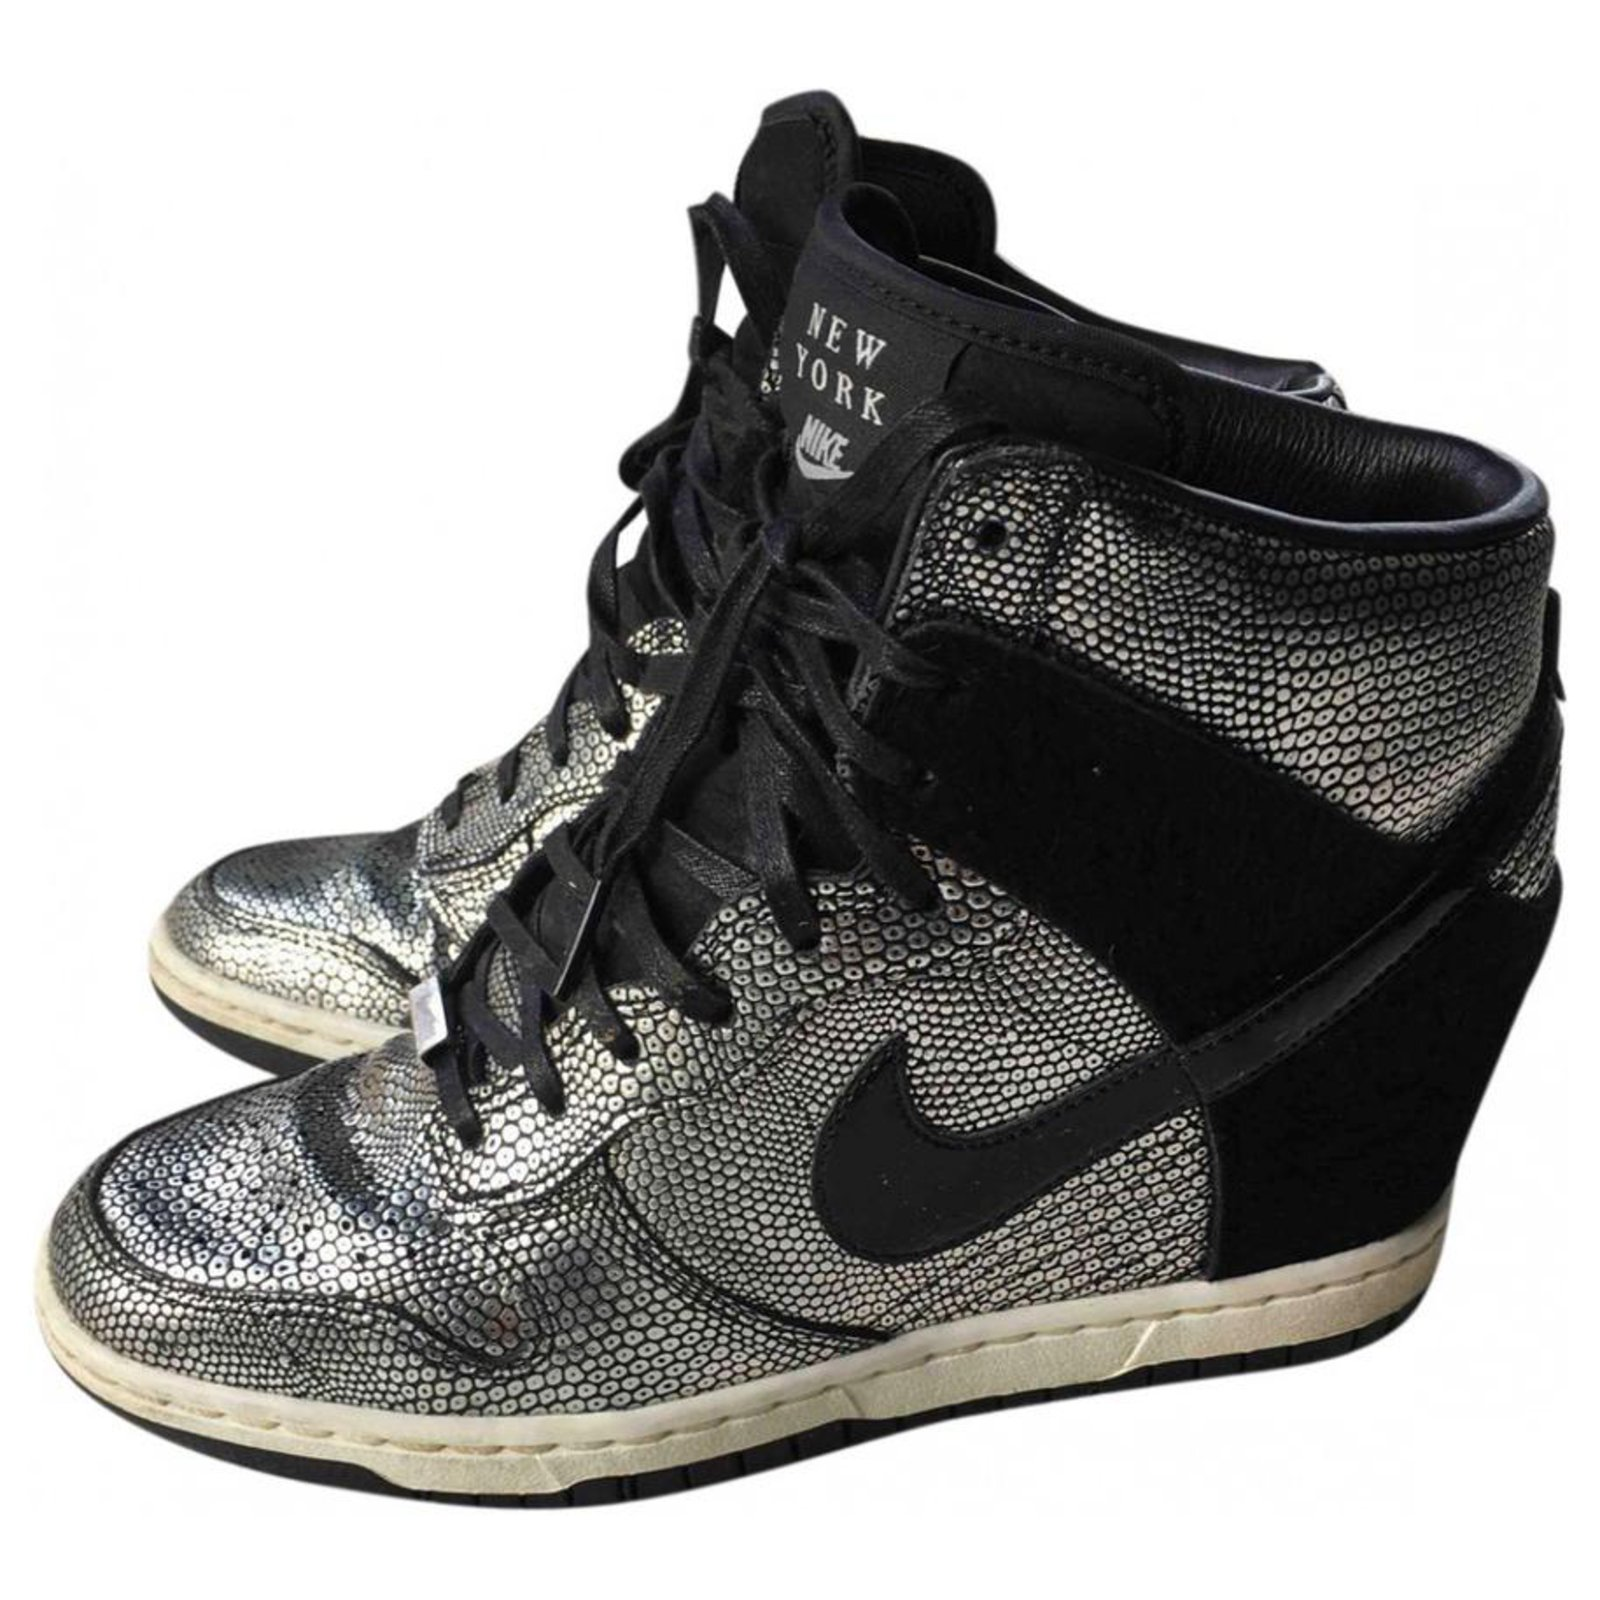 Nike Limited edition Sneakers Leather